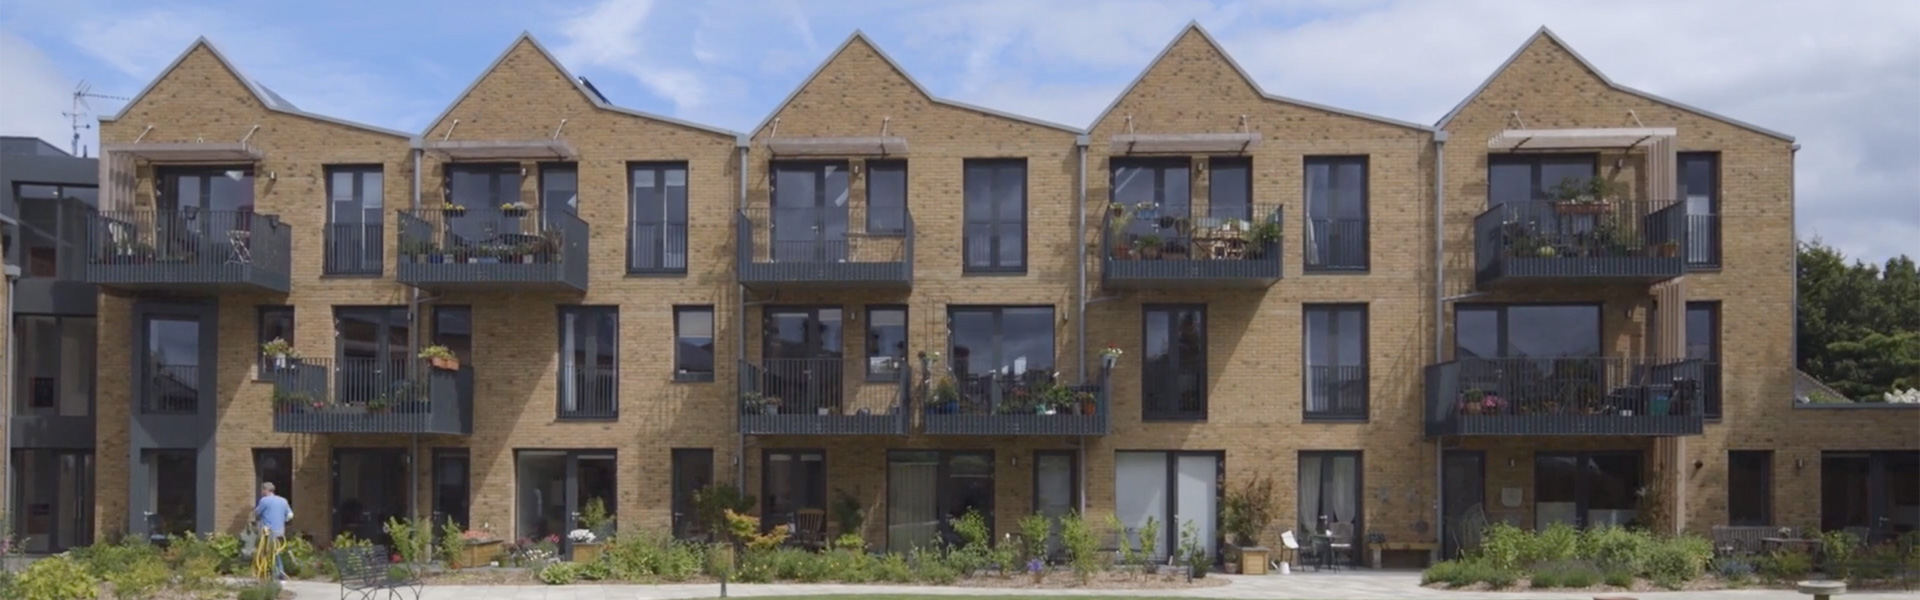 New Ground CoHousing 1920x600